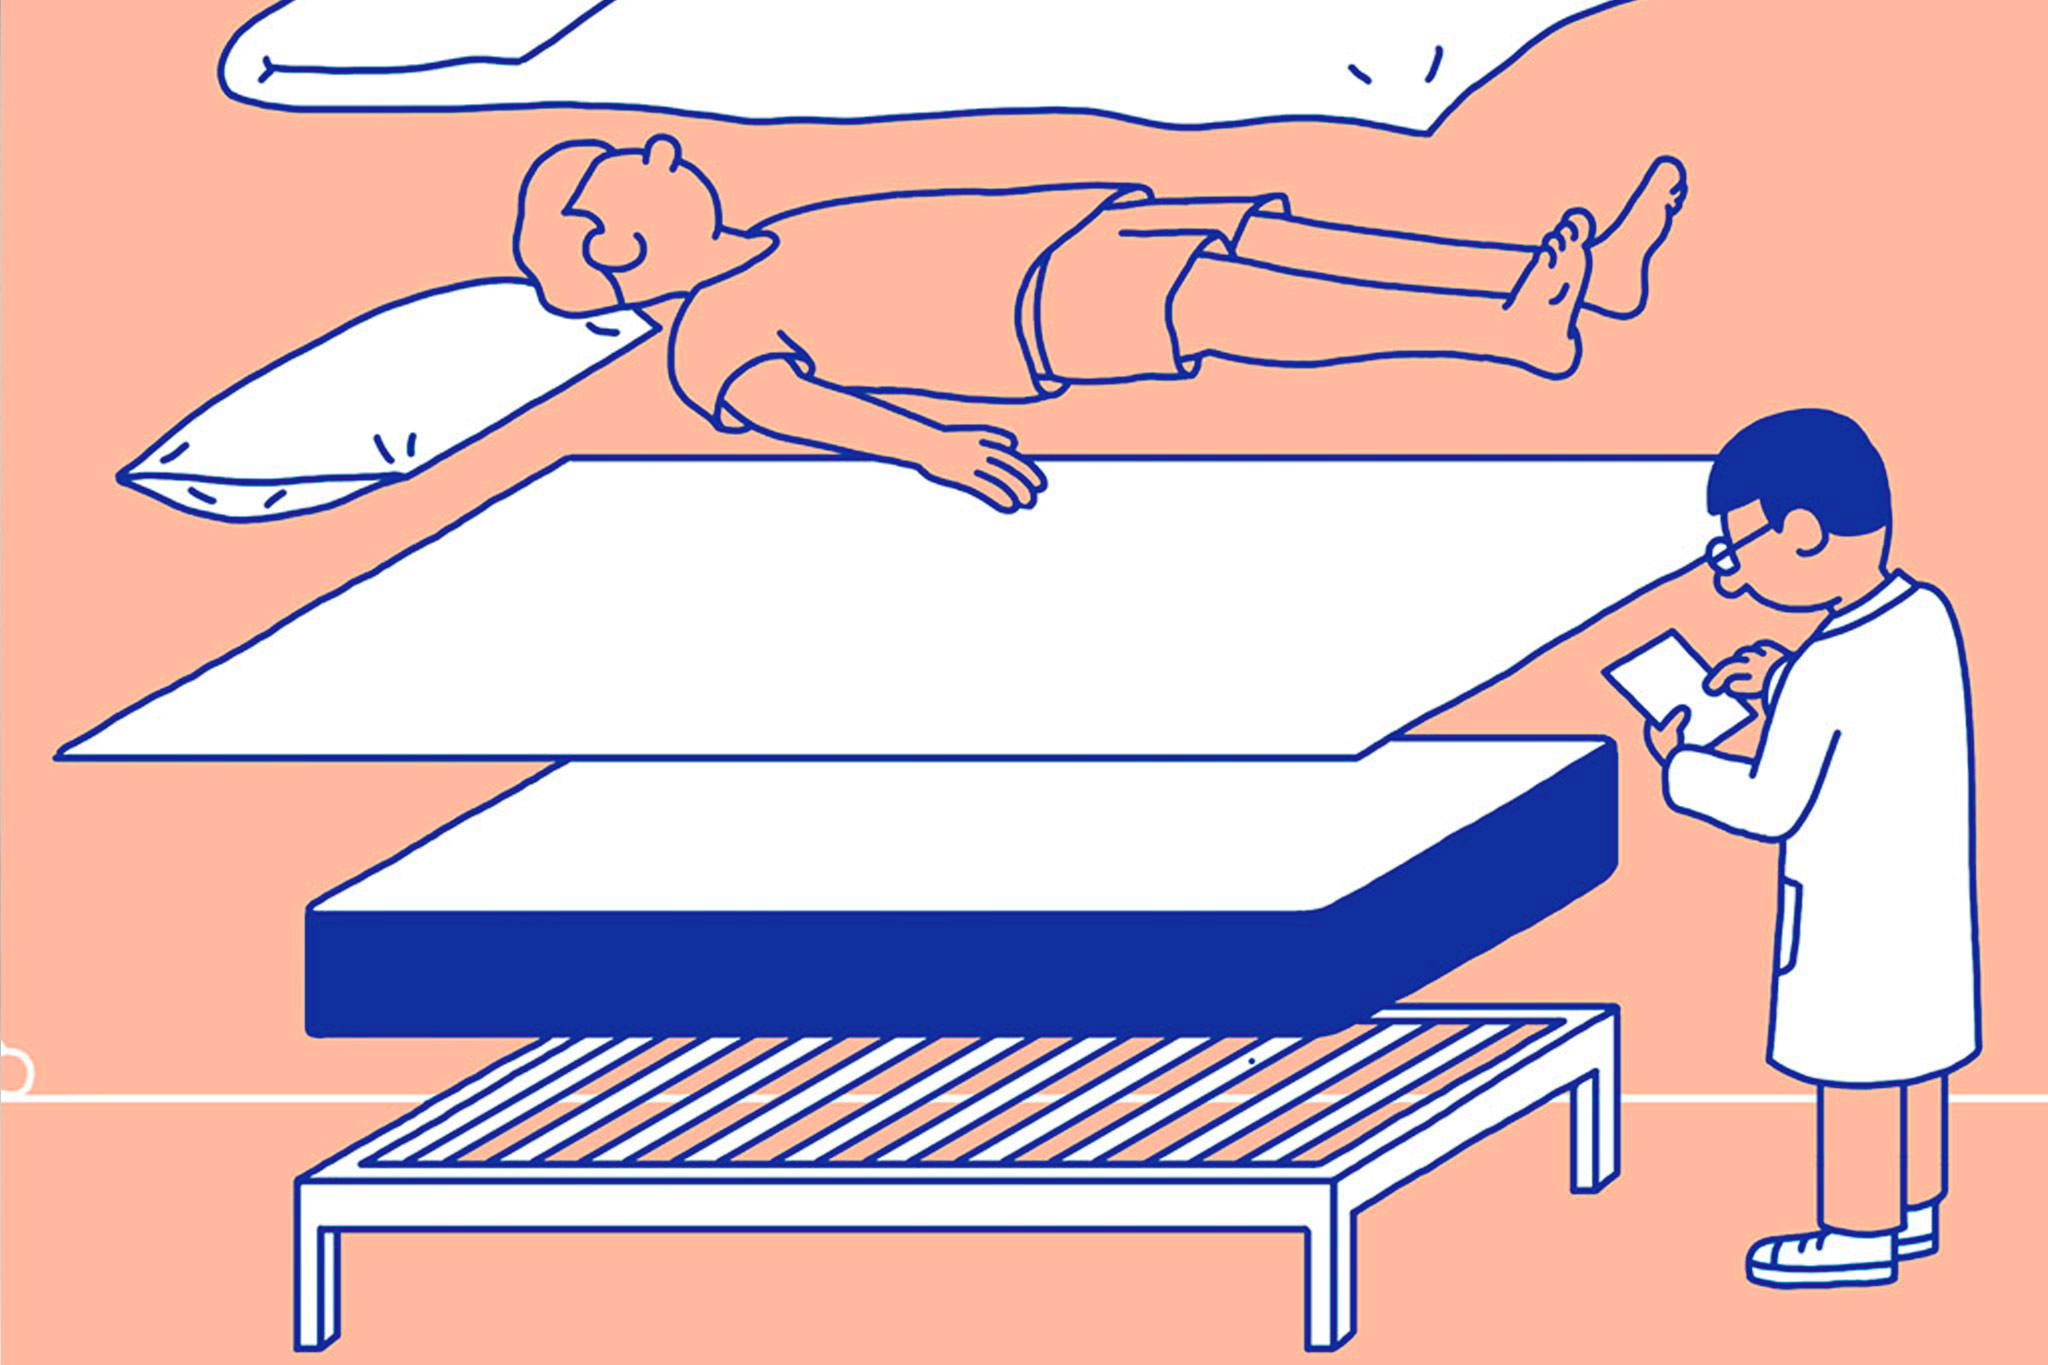 Casper Mattress Illustration OrganicNewsroom